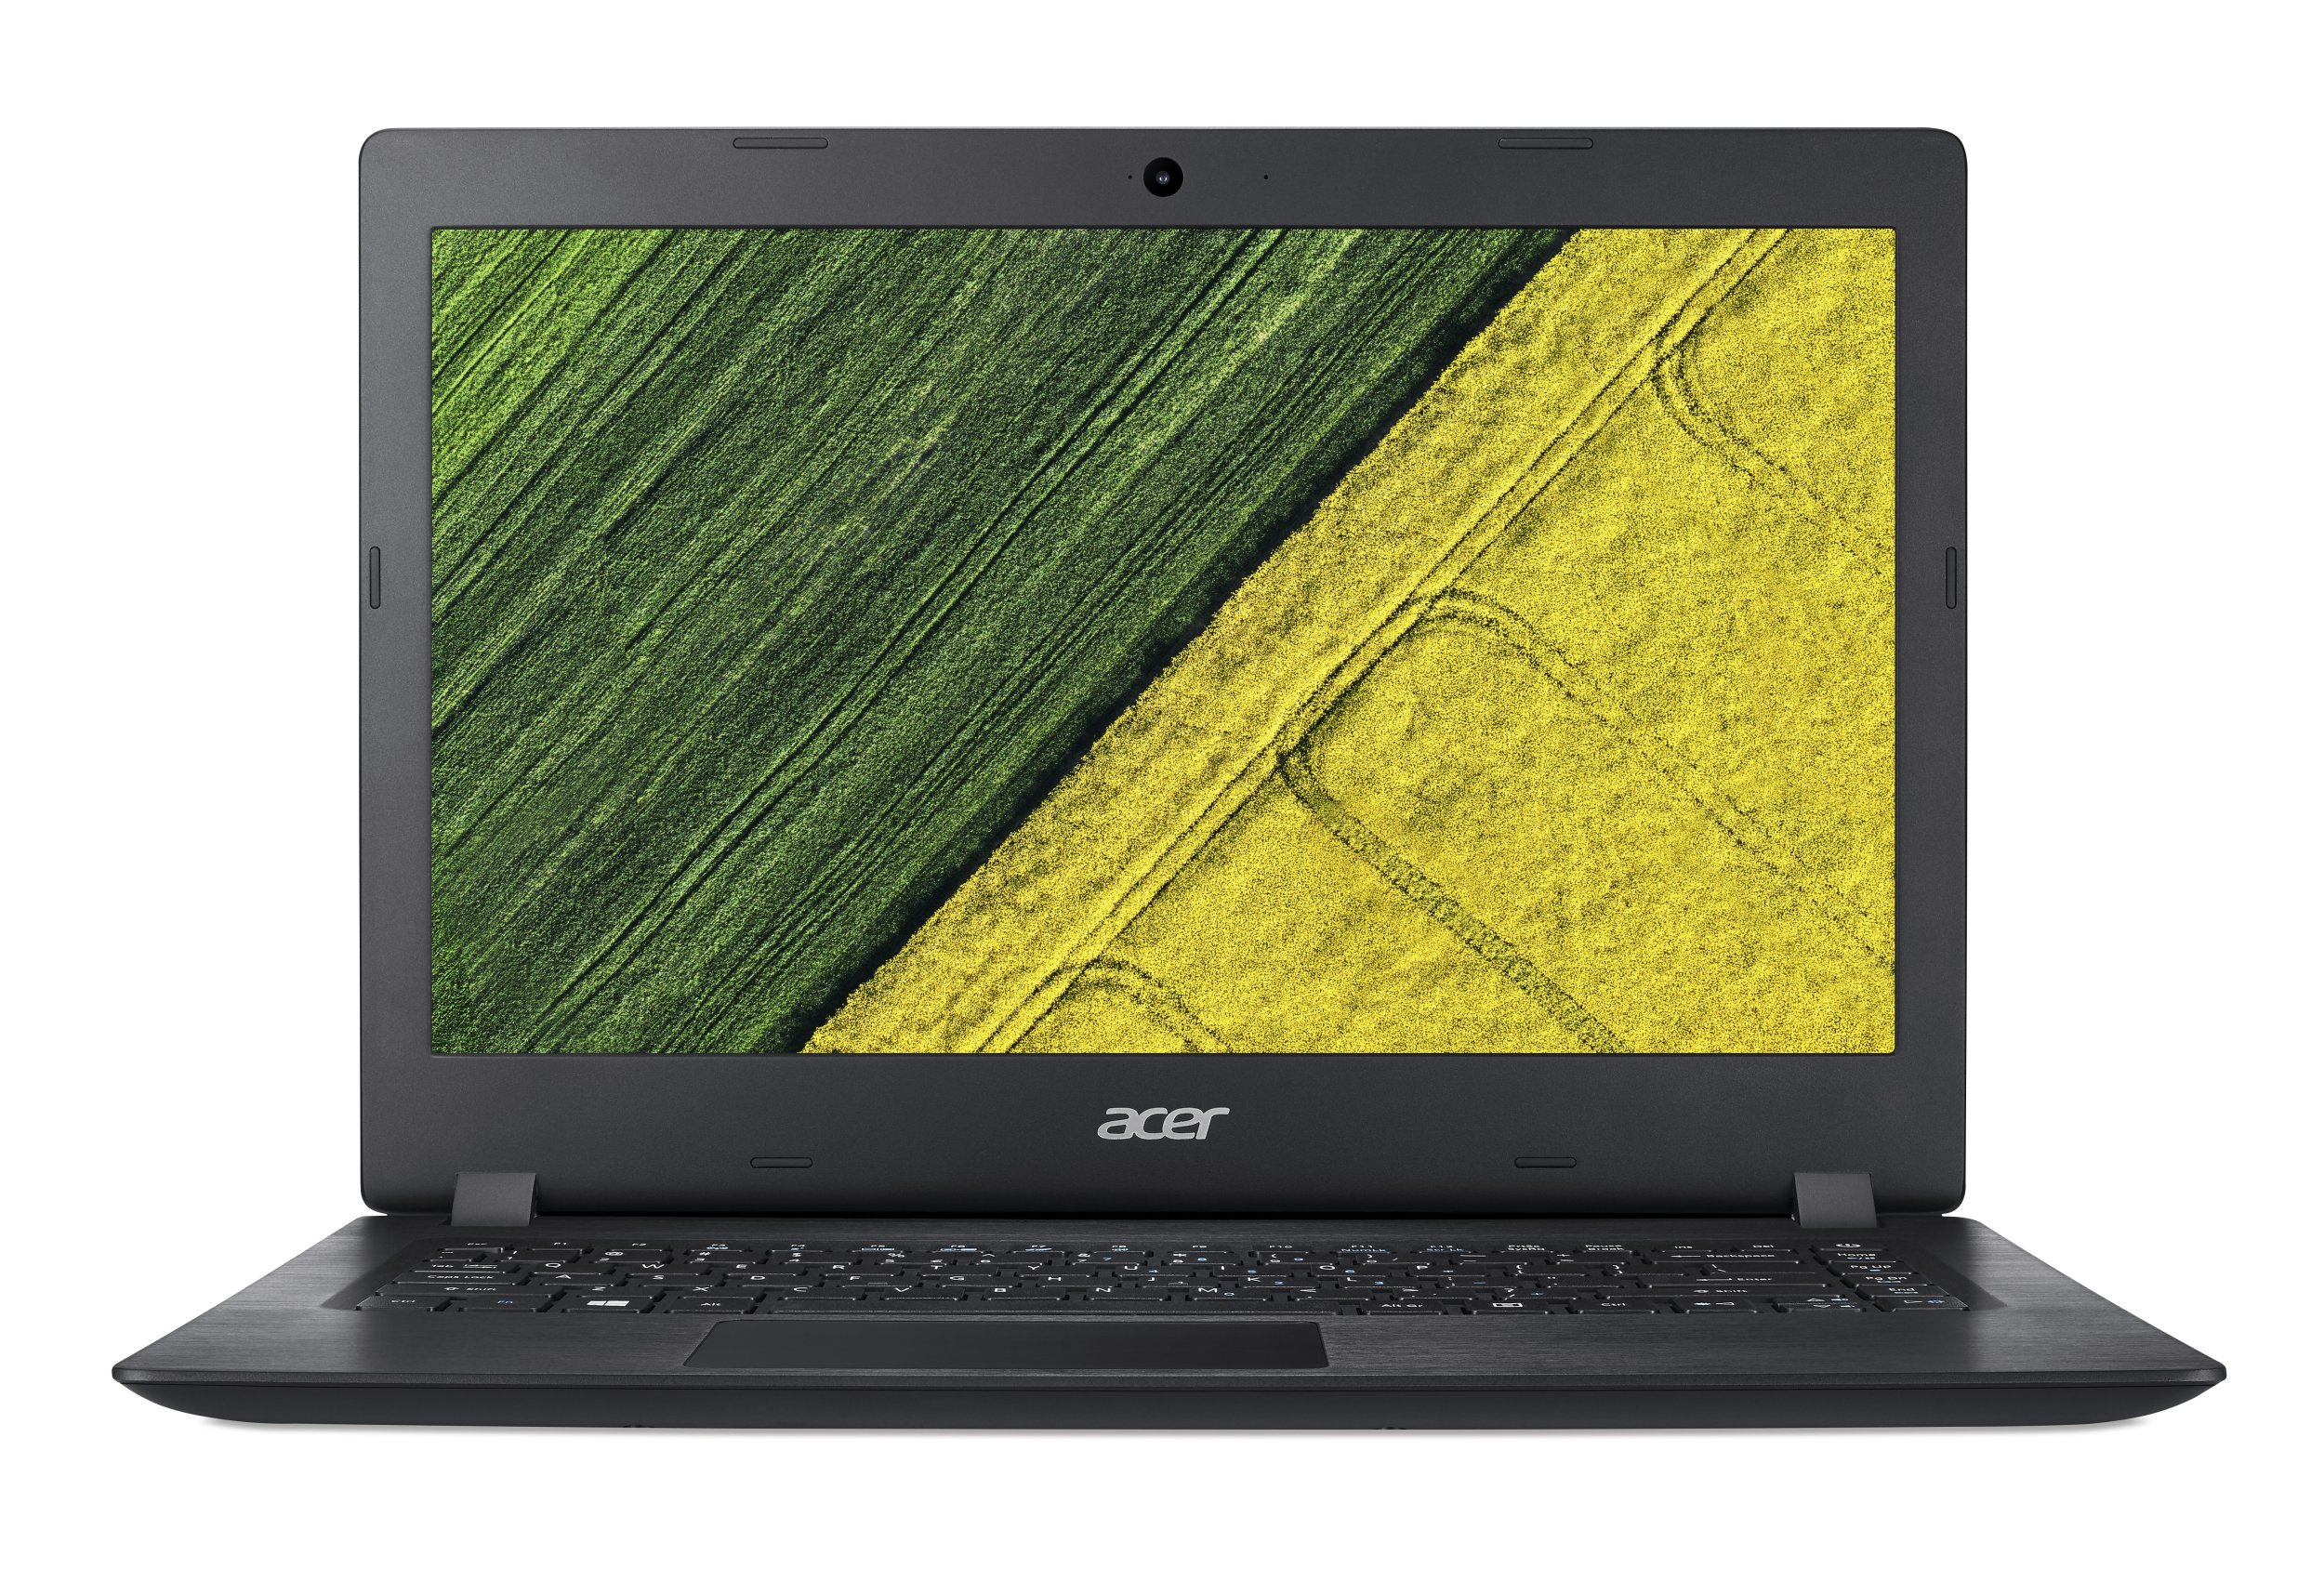 "Acer Aspire 1 (A114-31-C813) Celeron N3350/4GB+N/A/64GB+N/A/HD Graphics/14"" HD/BT/W10 Home+Office 365/Black"